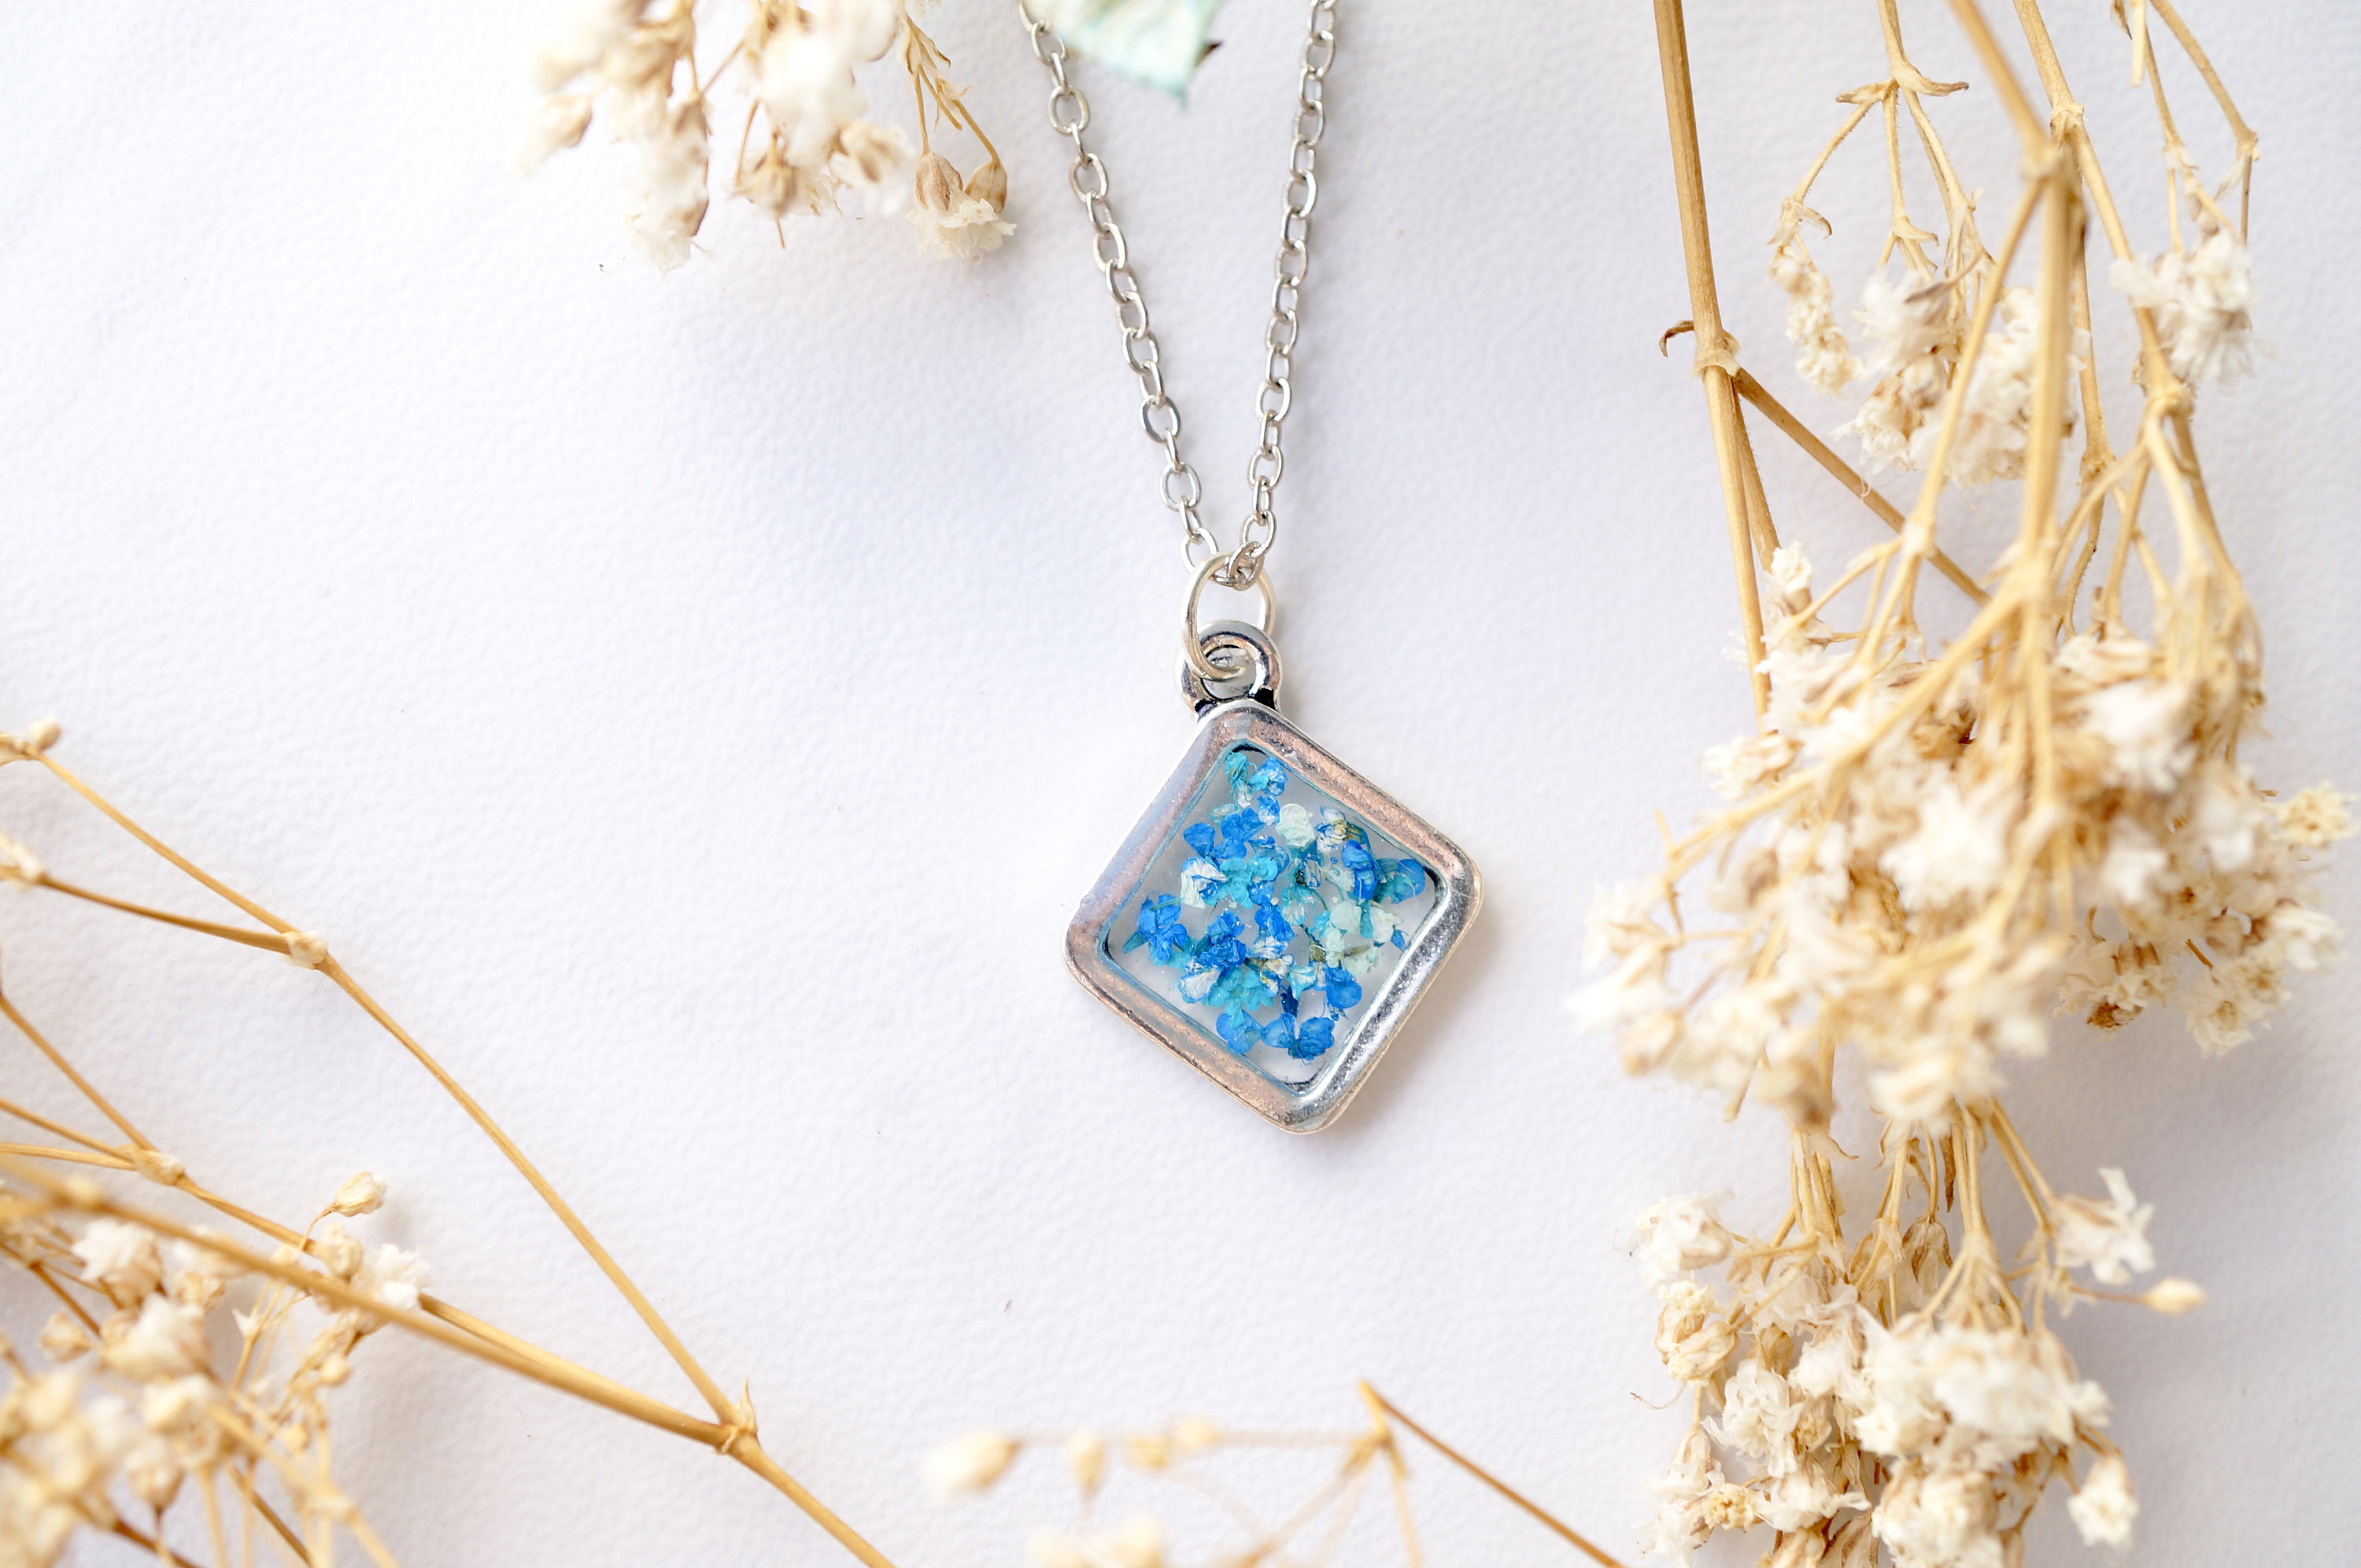 Real Dried Flowers And Resin NecklaceSilver Diamond In Blue Teal Mint